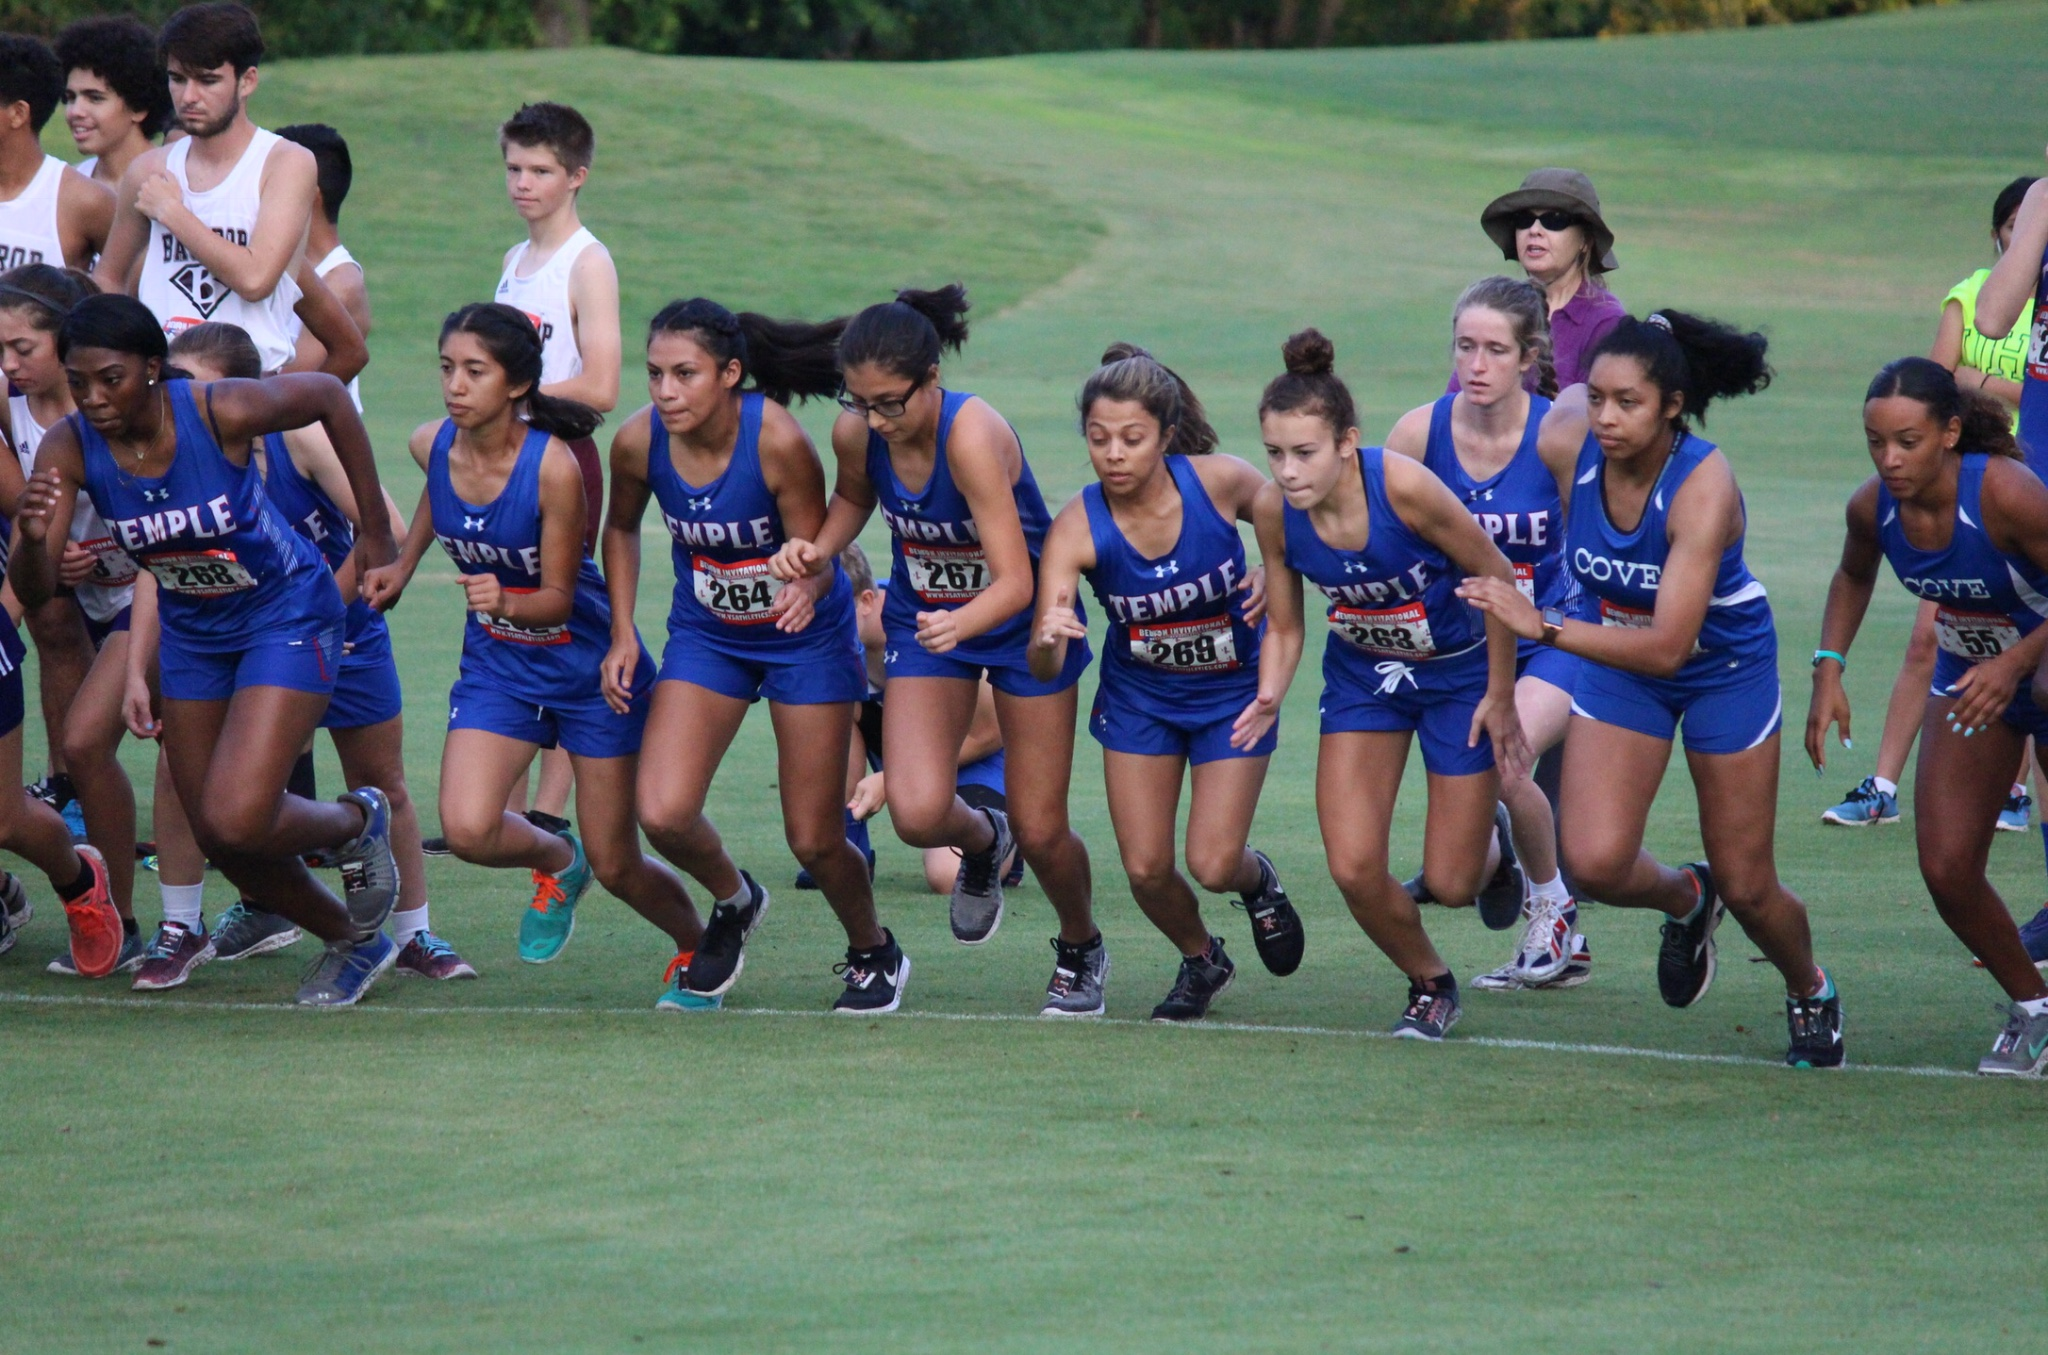 Cross Country set to begin August 1st